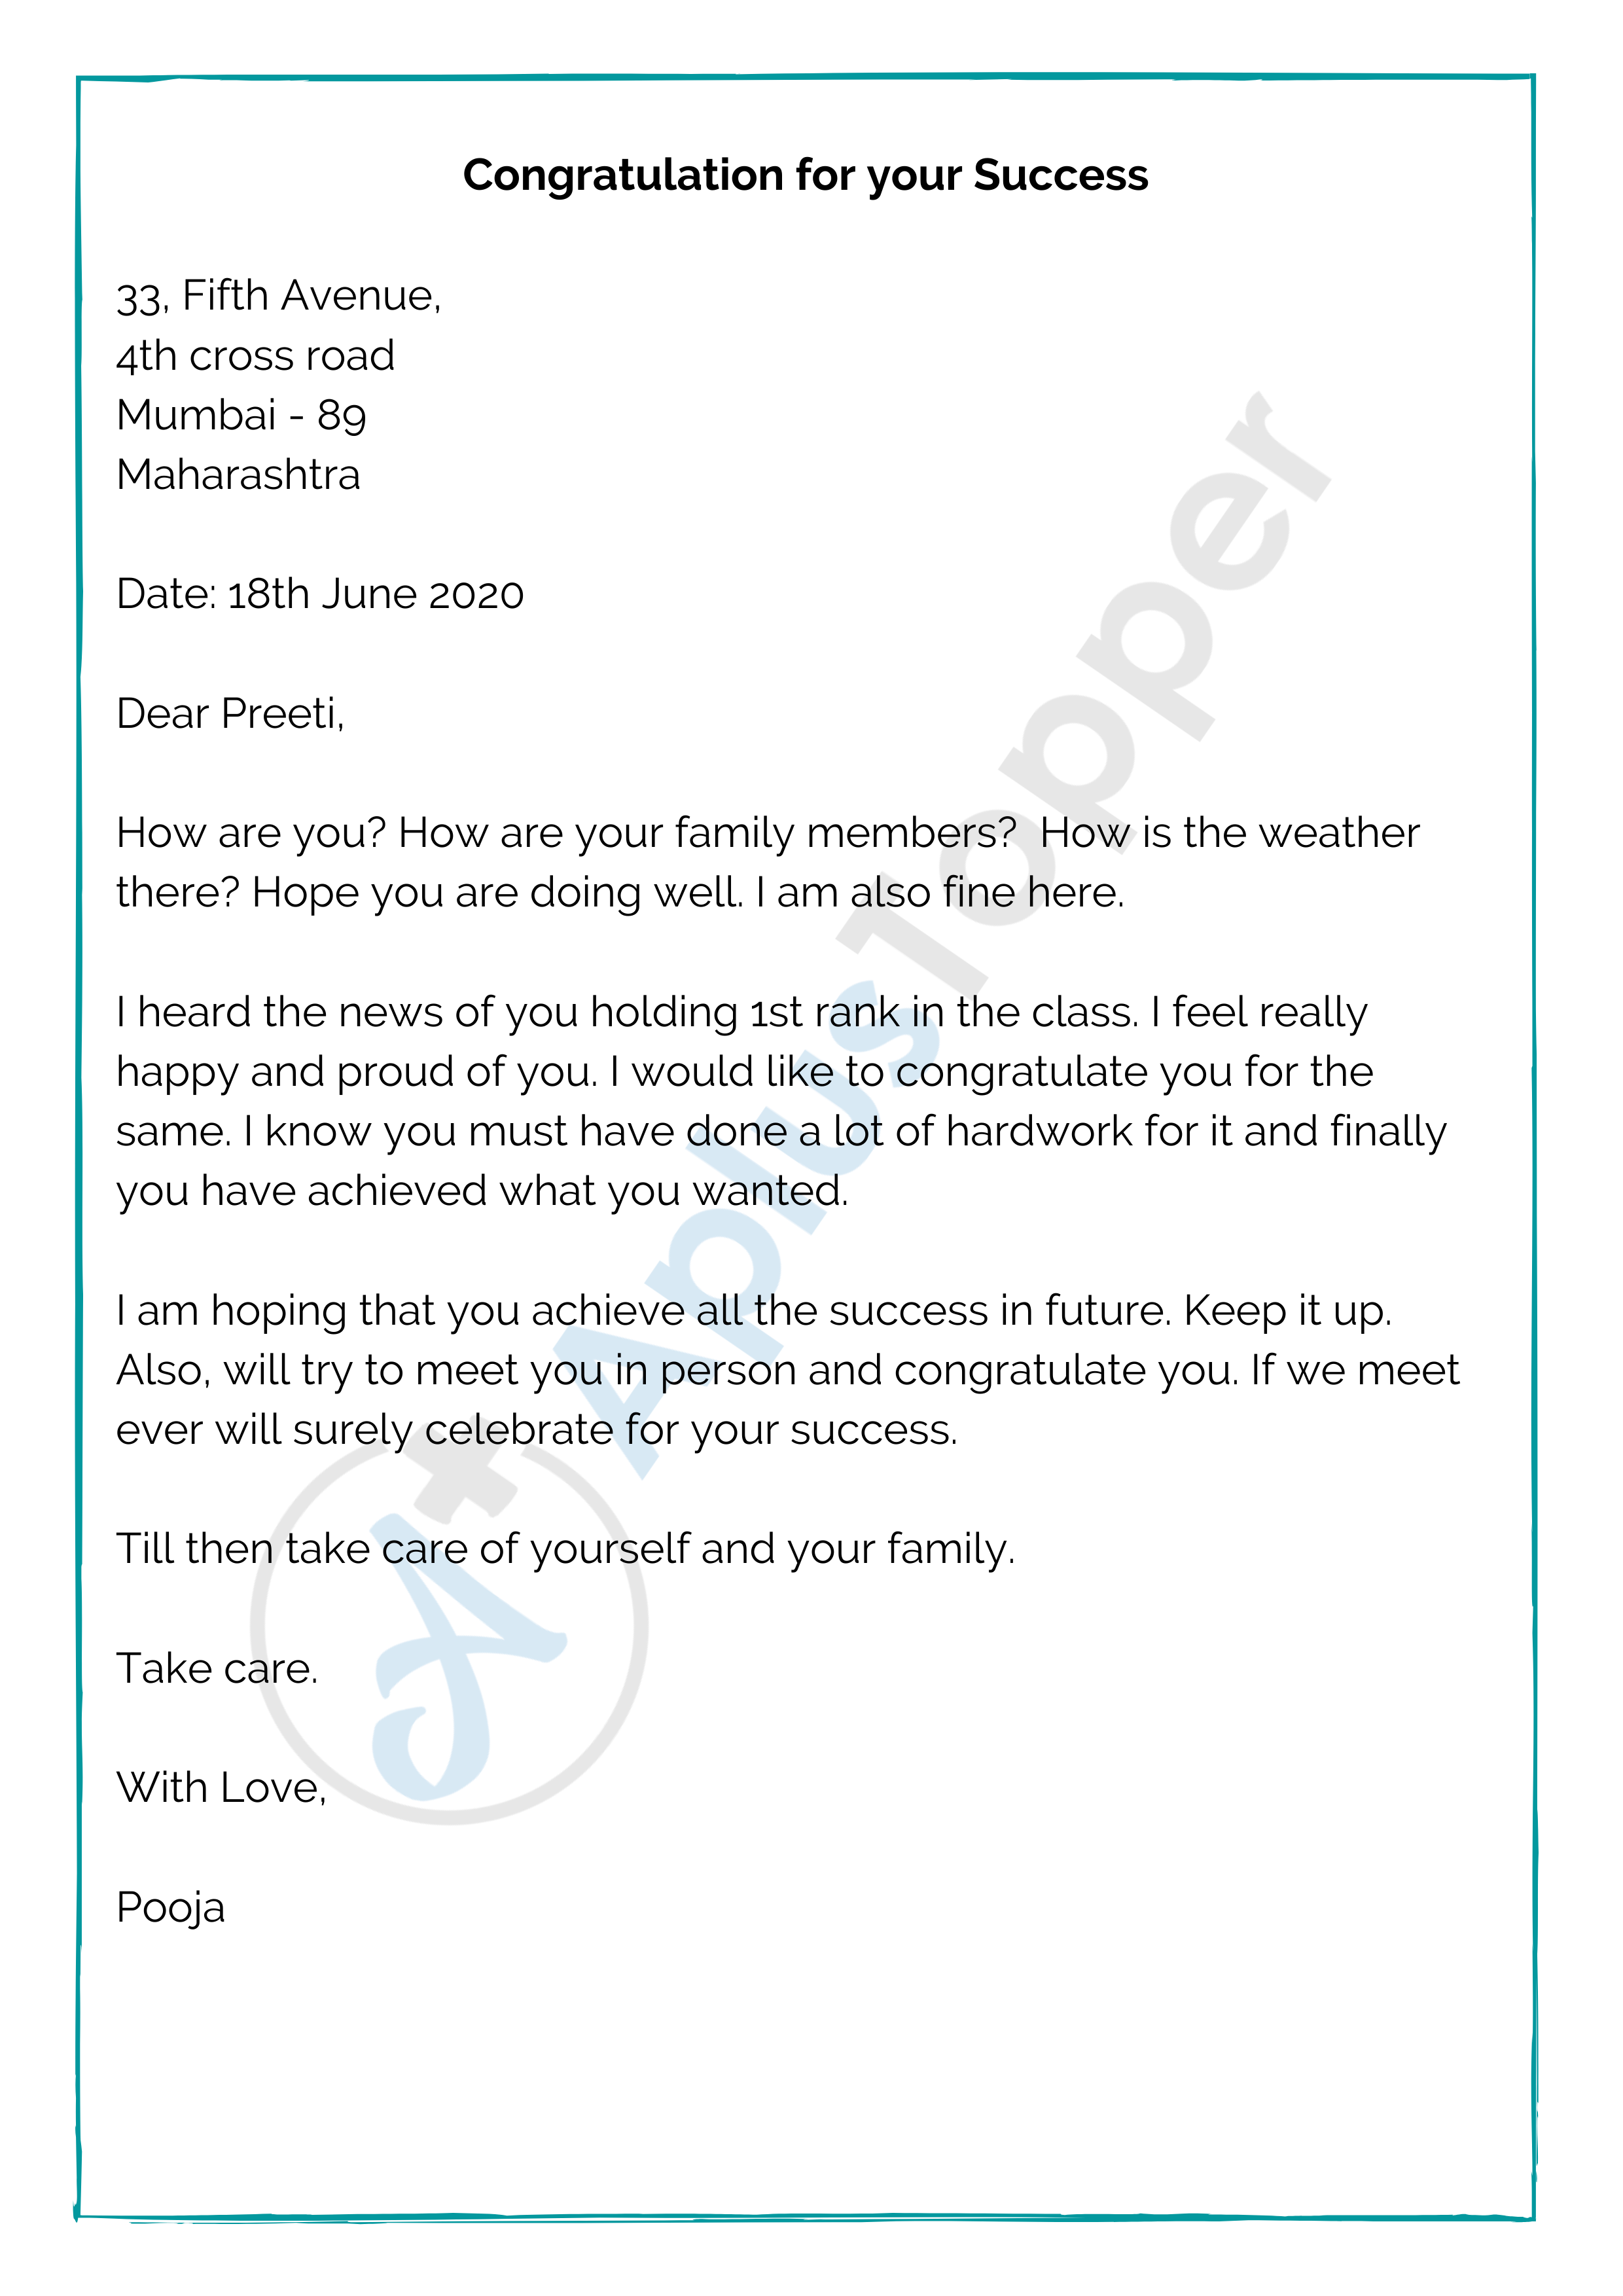 Informal Letter To A Friend To Congratulate on Success